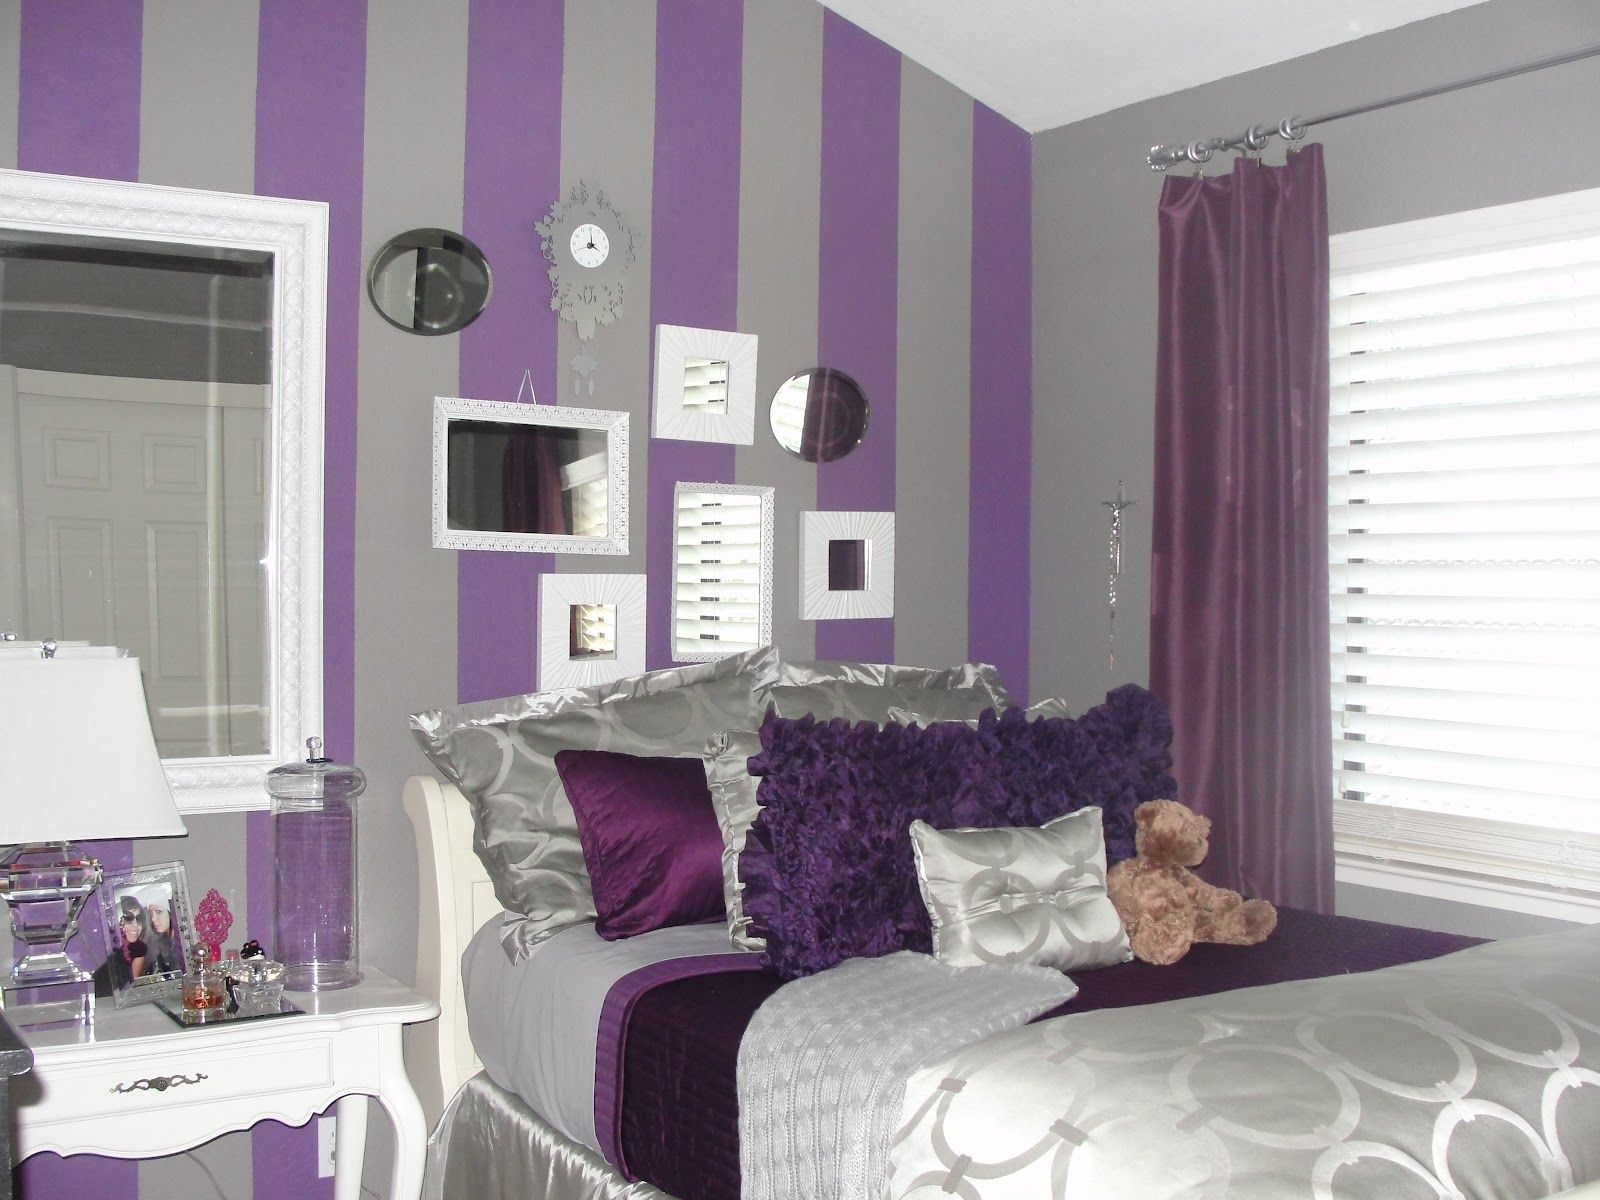 Bedroom Decorating Ideas Purple Walls teenage girl bedroom curtain ideas | design ideas 2017-2018